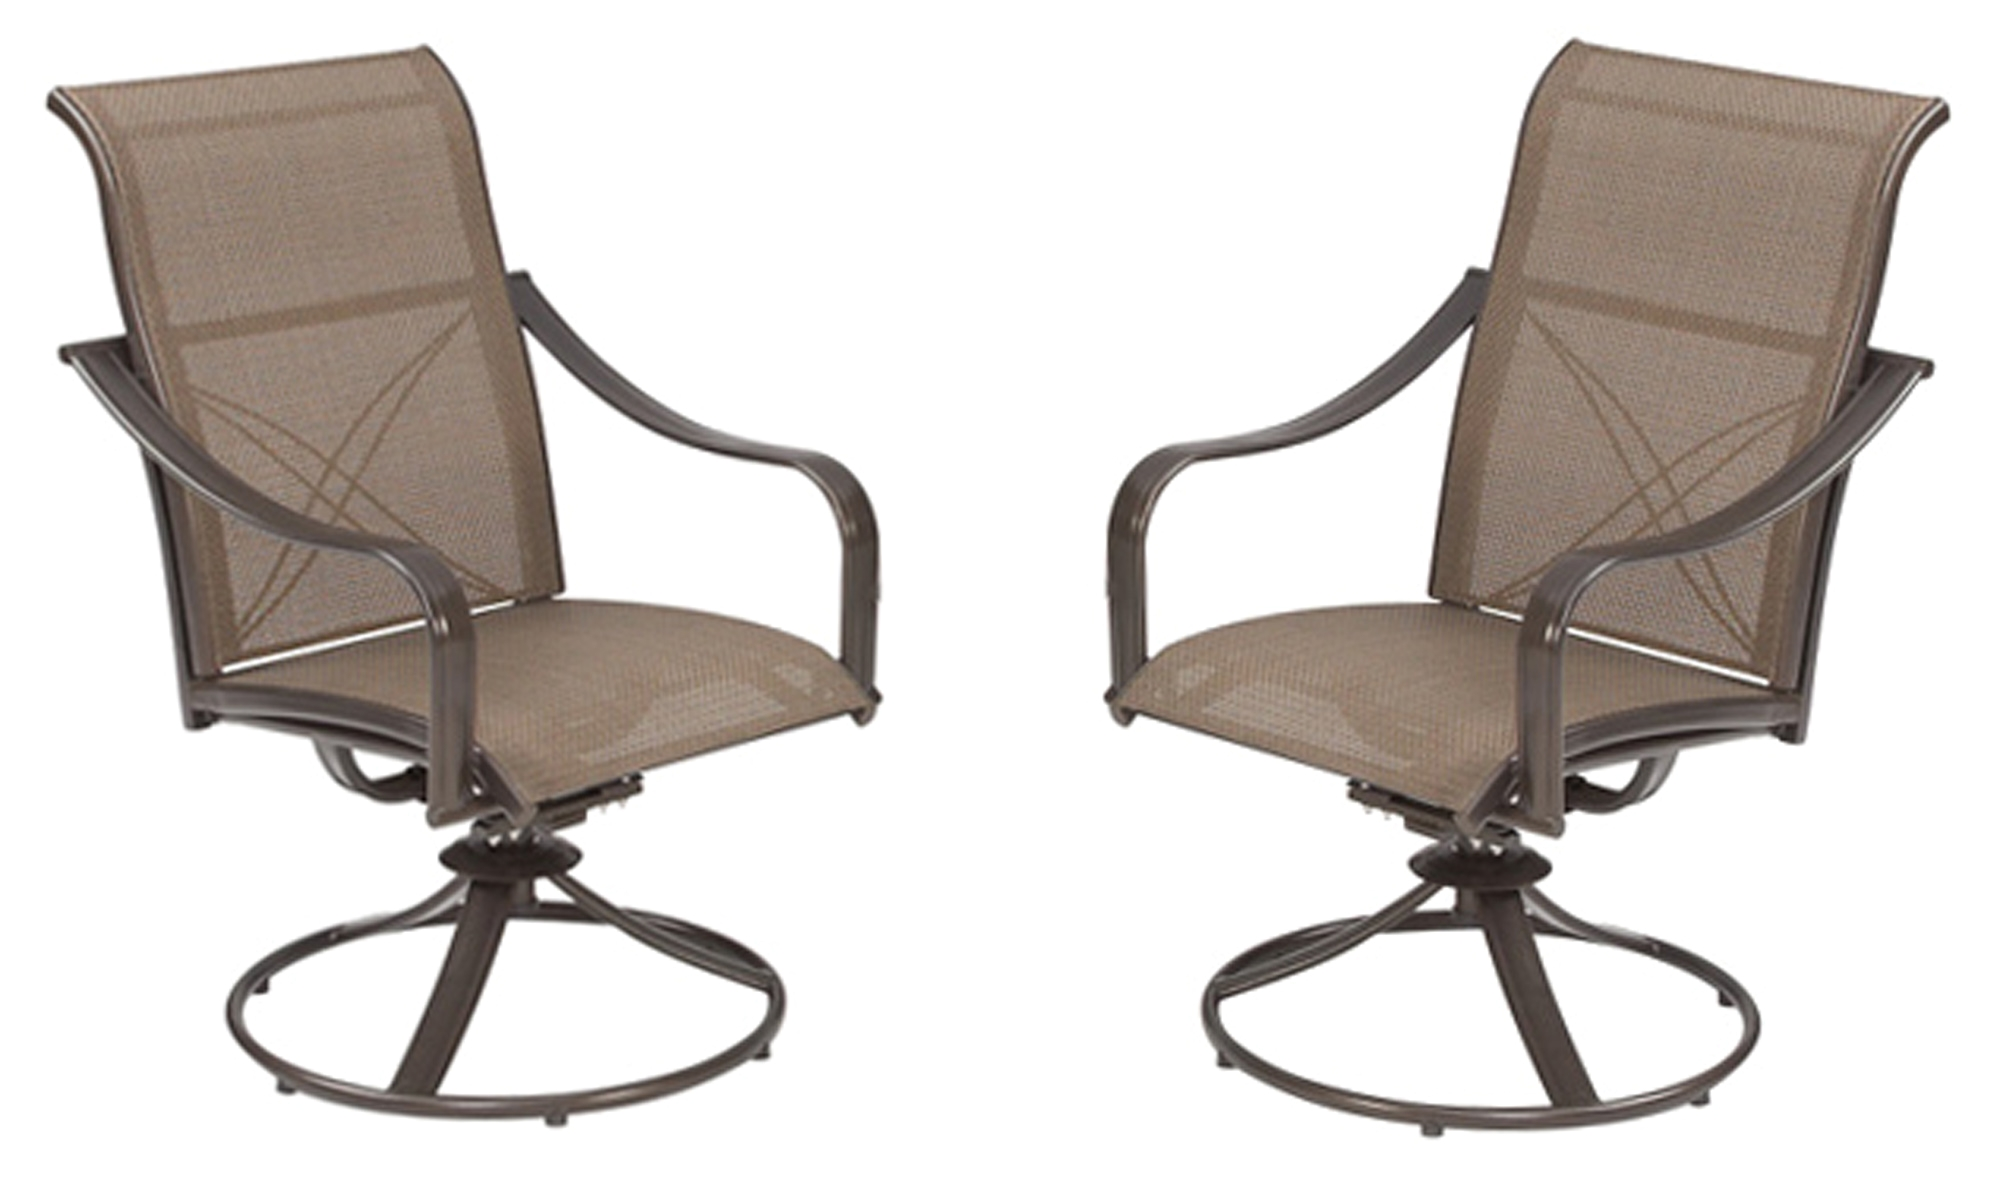 sling chairs for sale unusual table and chair sets sun tanning woodard tribeca aluminum stackable chaise lounge patio